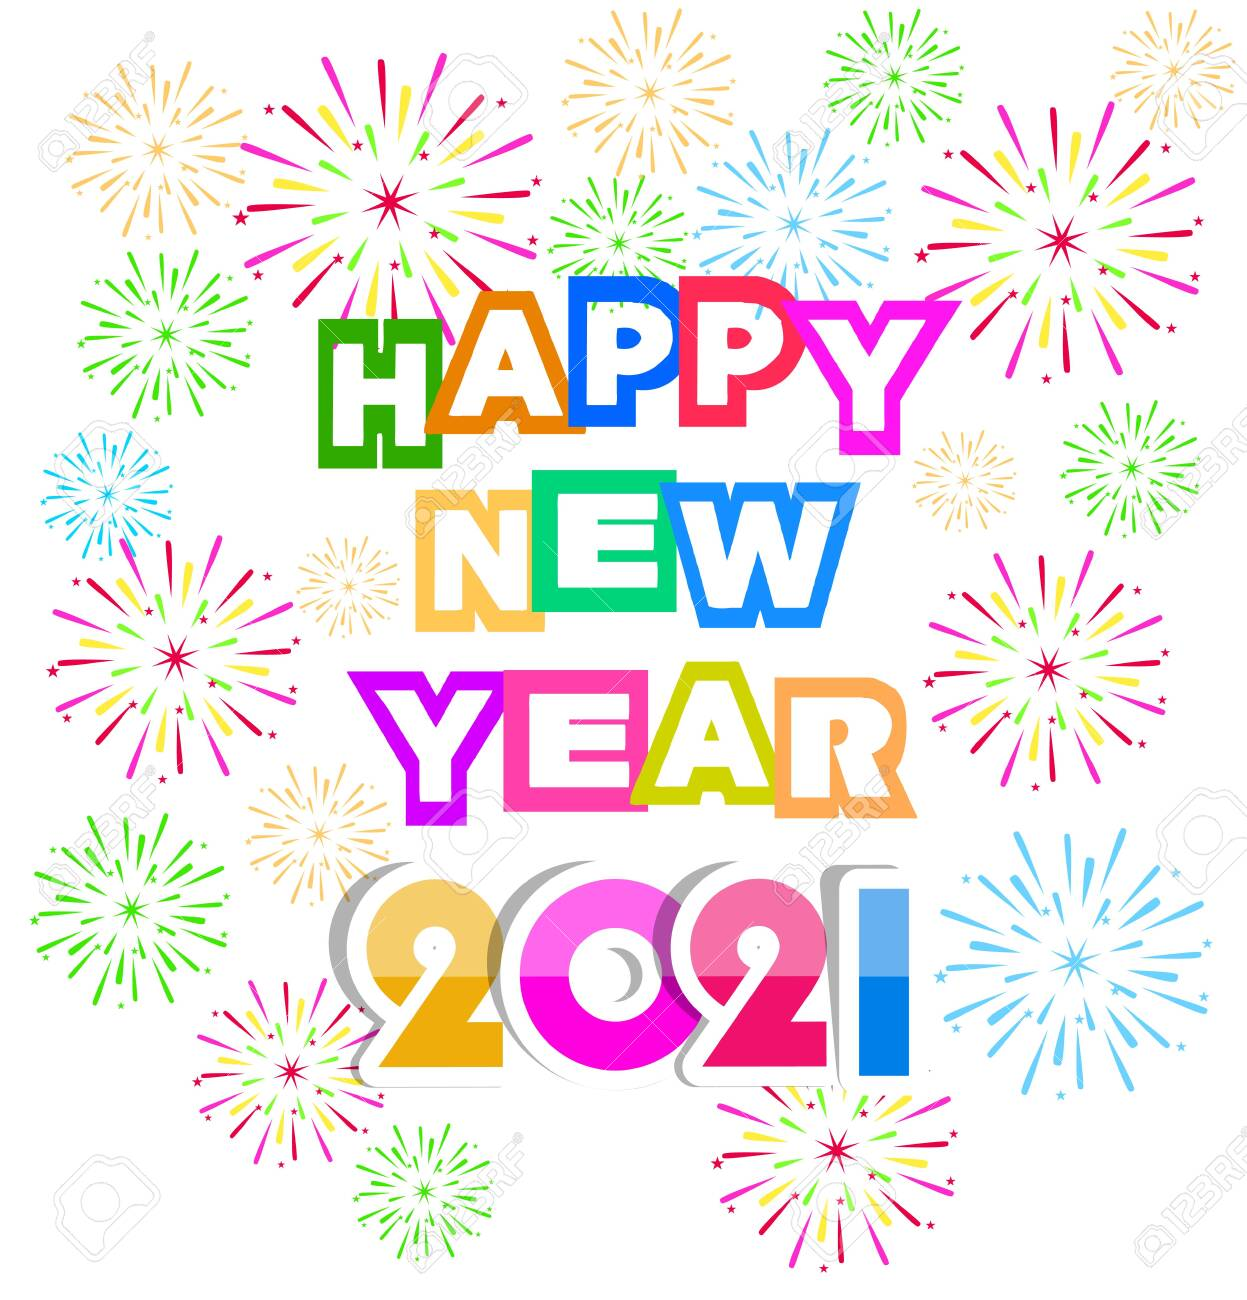 happy new year 2021 with firework background firework display royalty free cliparts vectors and stock illustration image 136892375 happy new year 2021 with firework background firework display